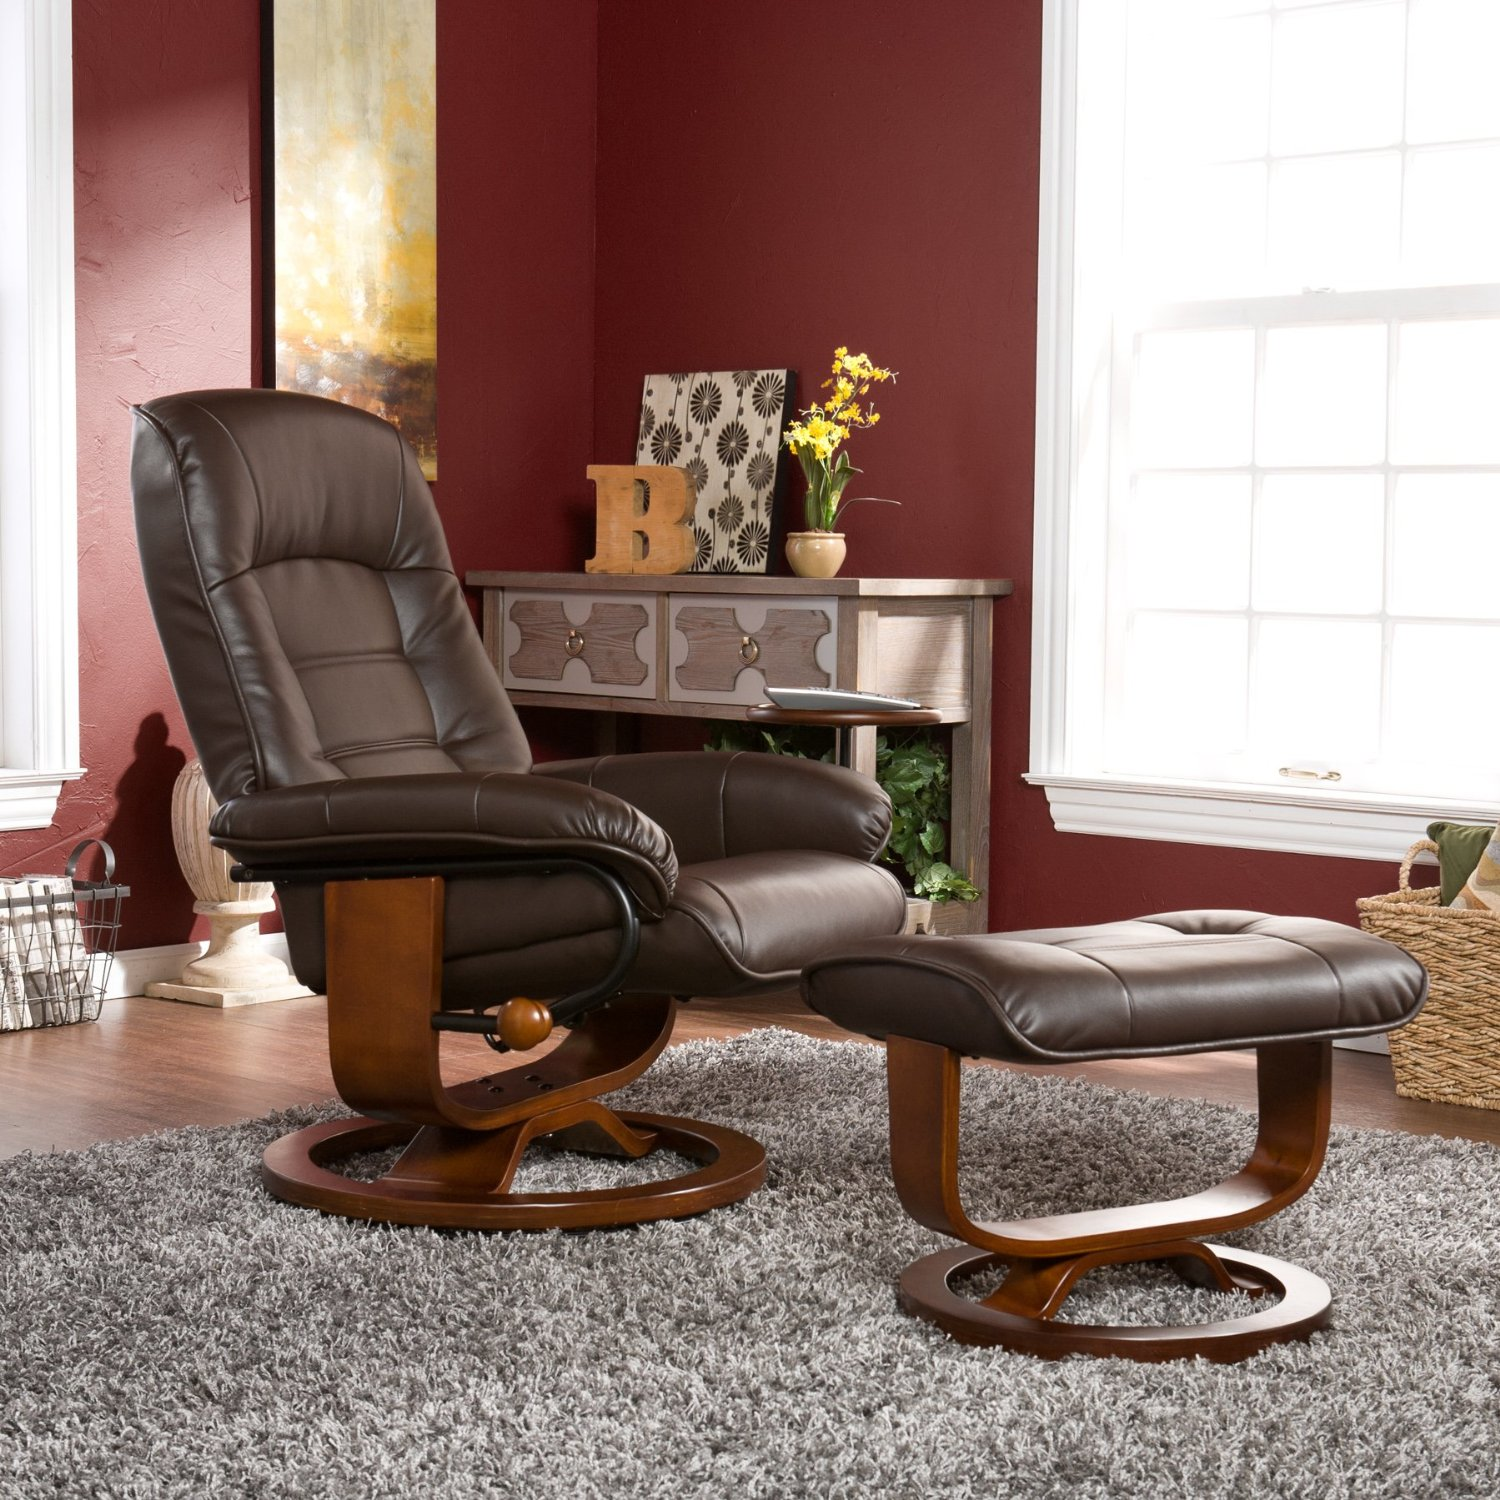 The Stressless Chair is the Best Chair Ever!